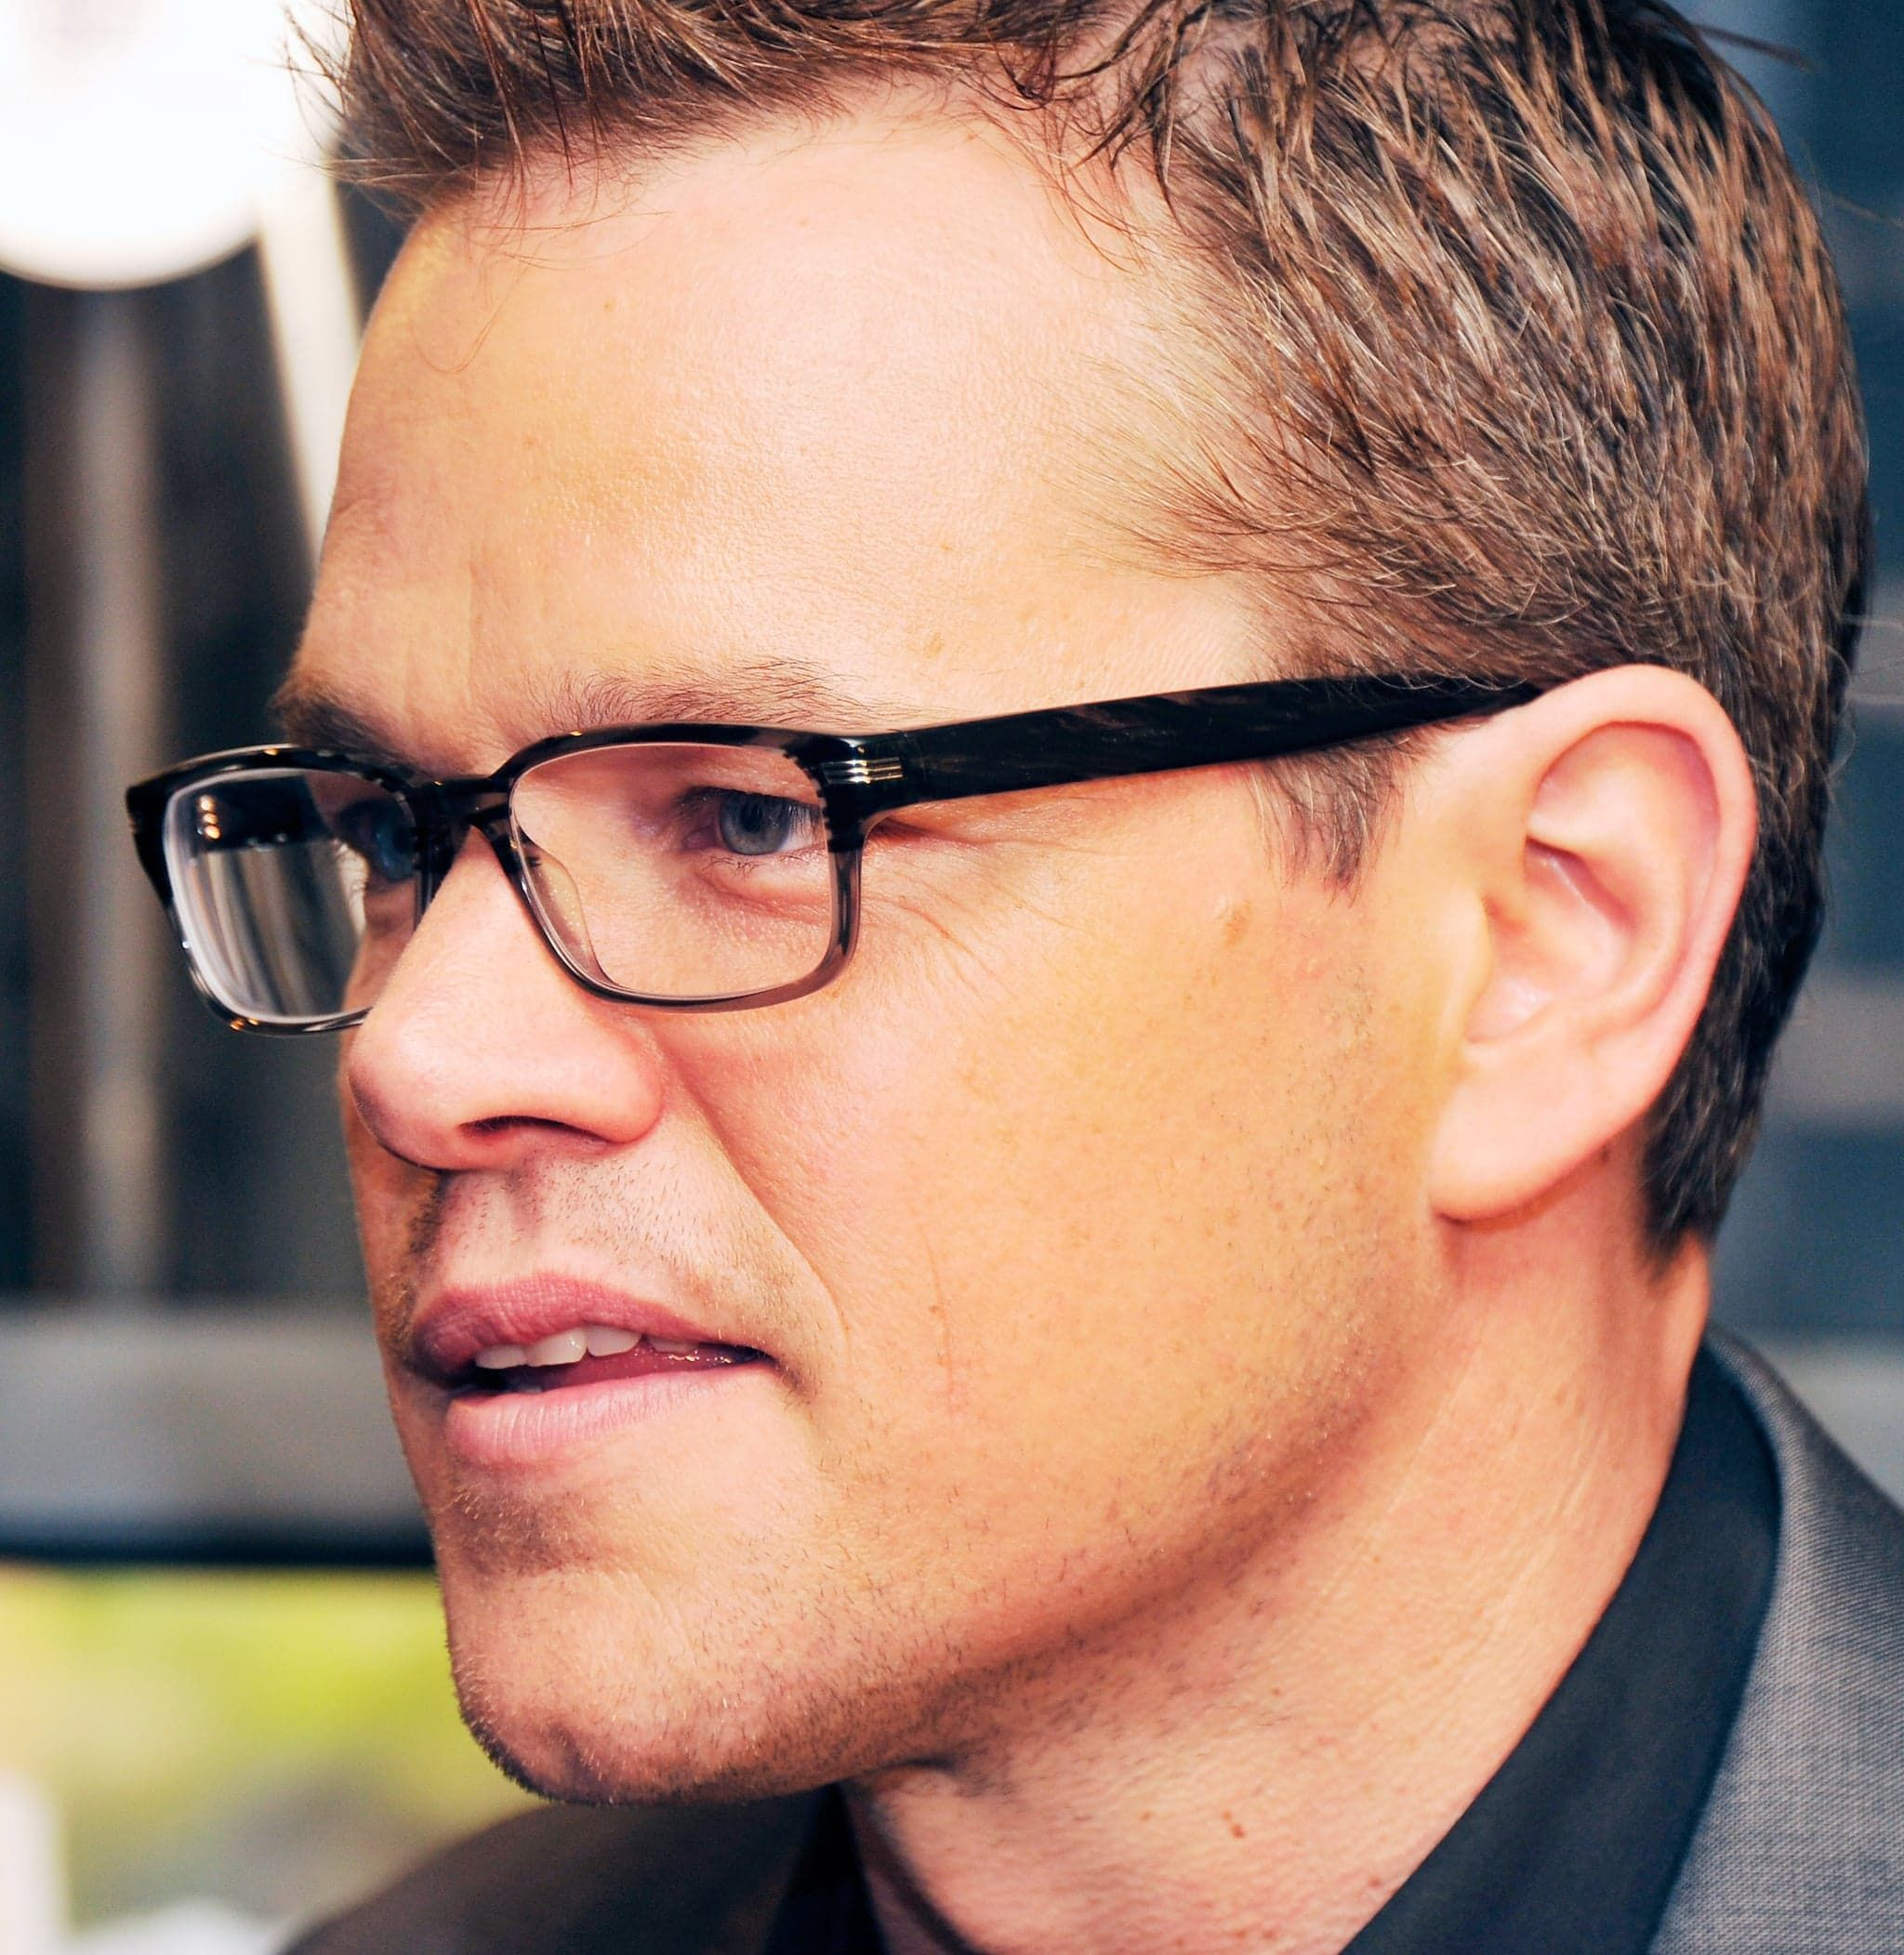 Kitchen For Cause Matt Into A Damon Brings His The Heat Good wFxTOpFqY